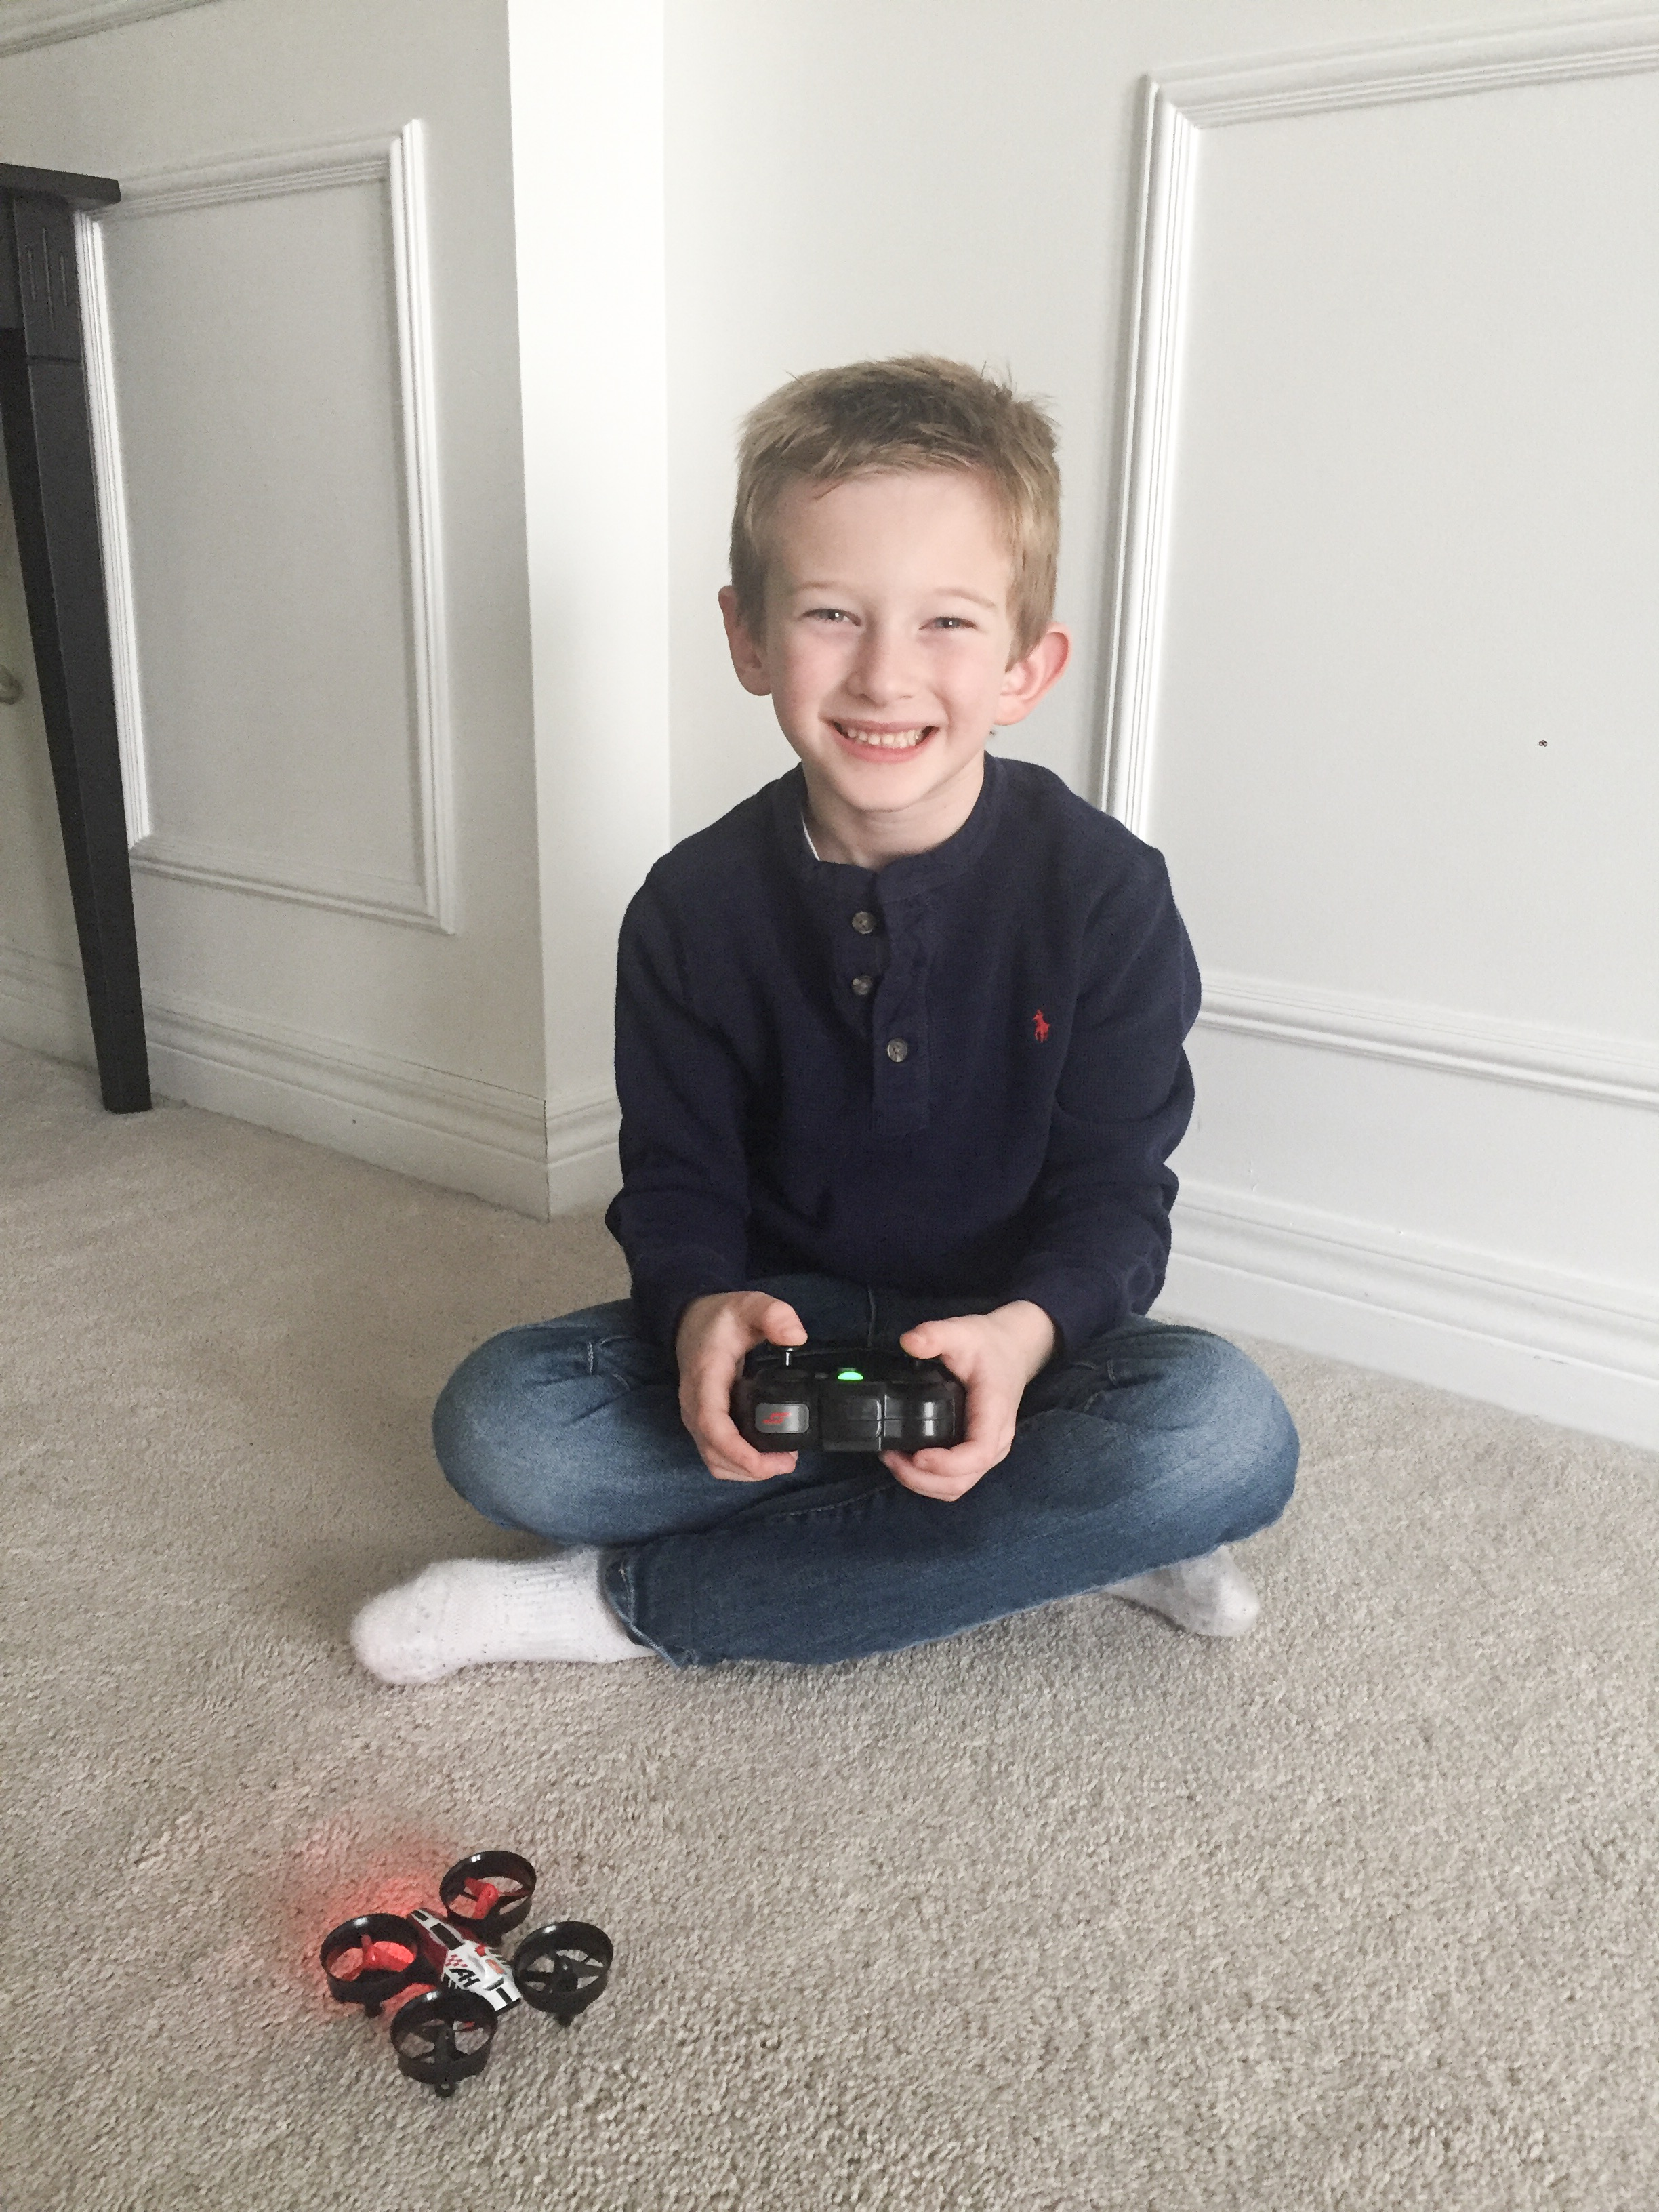 Review on the Air Hogs Micro Race Drone by Spinmaster